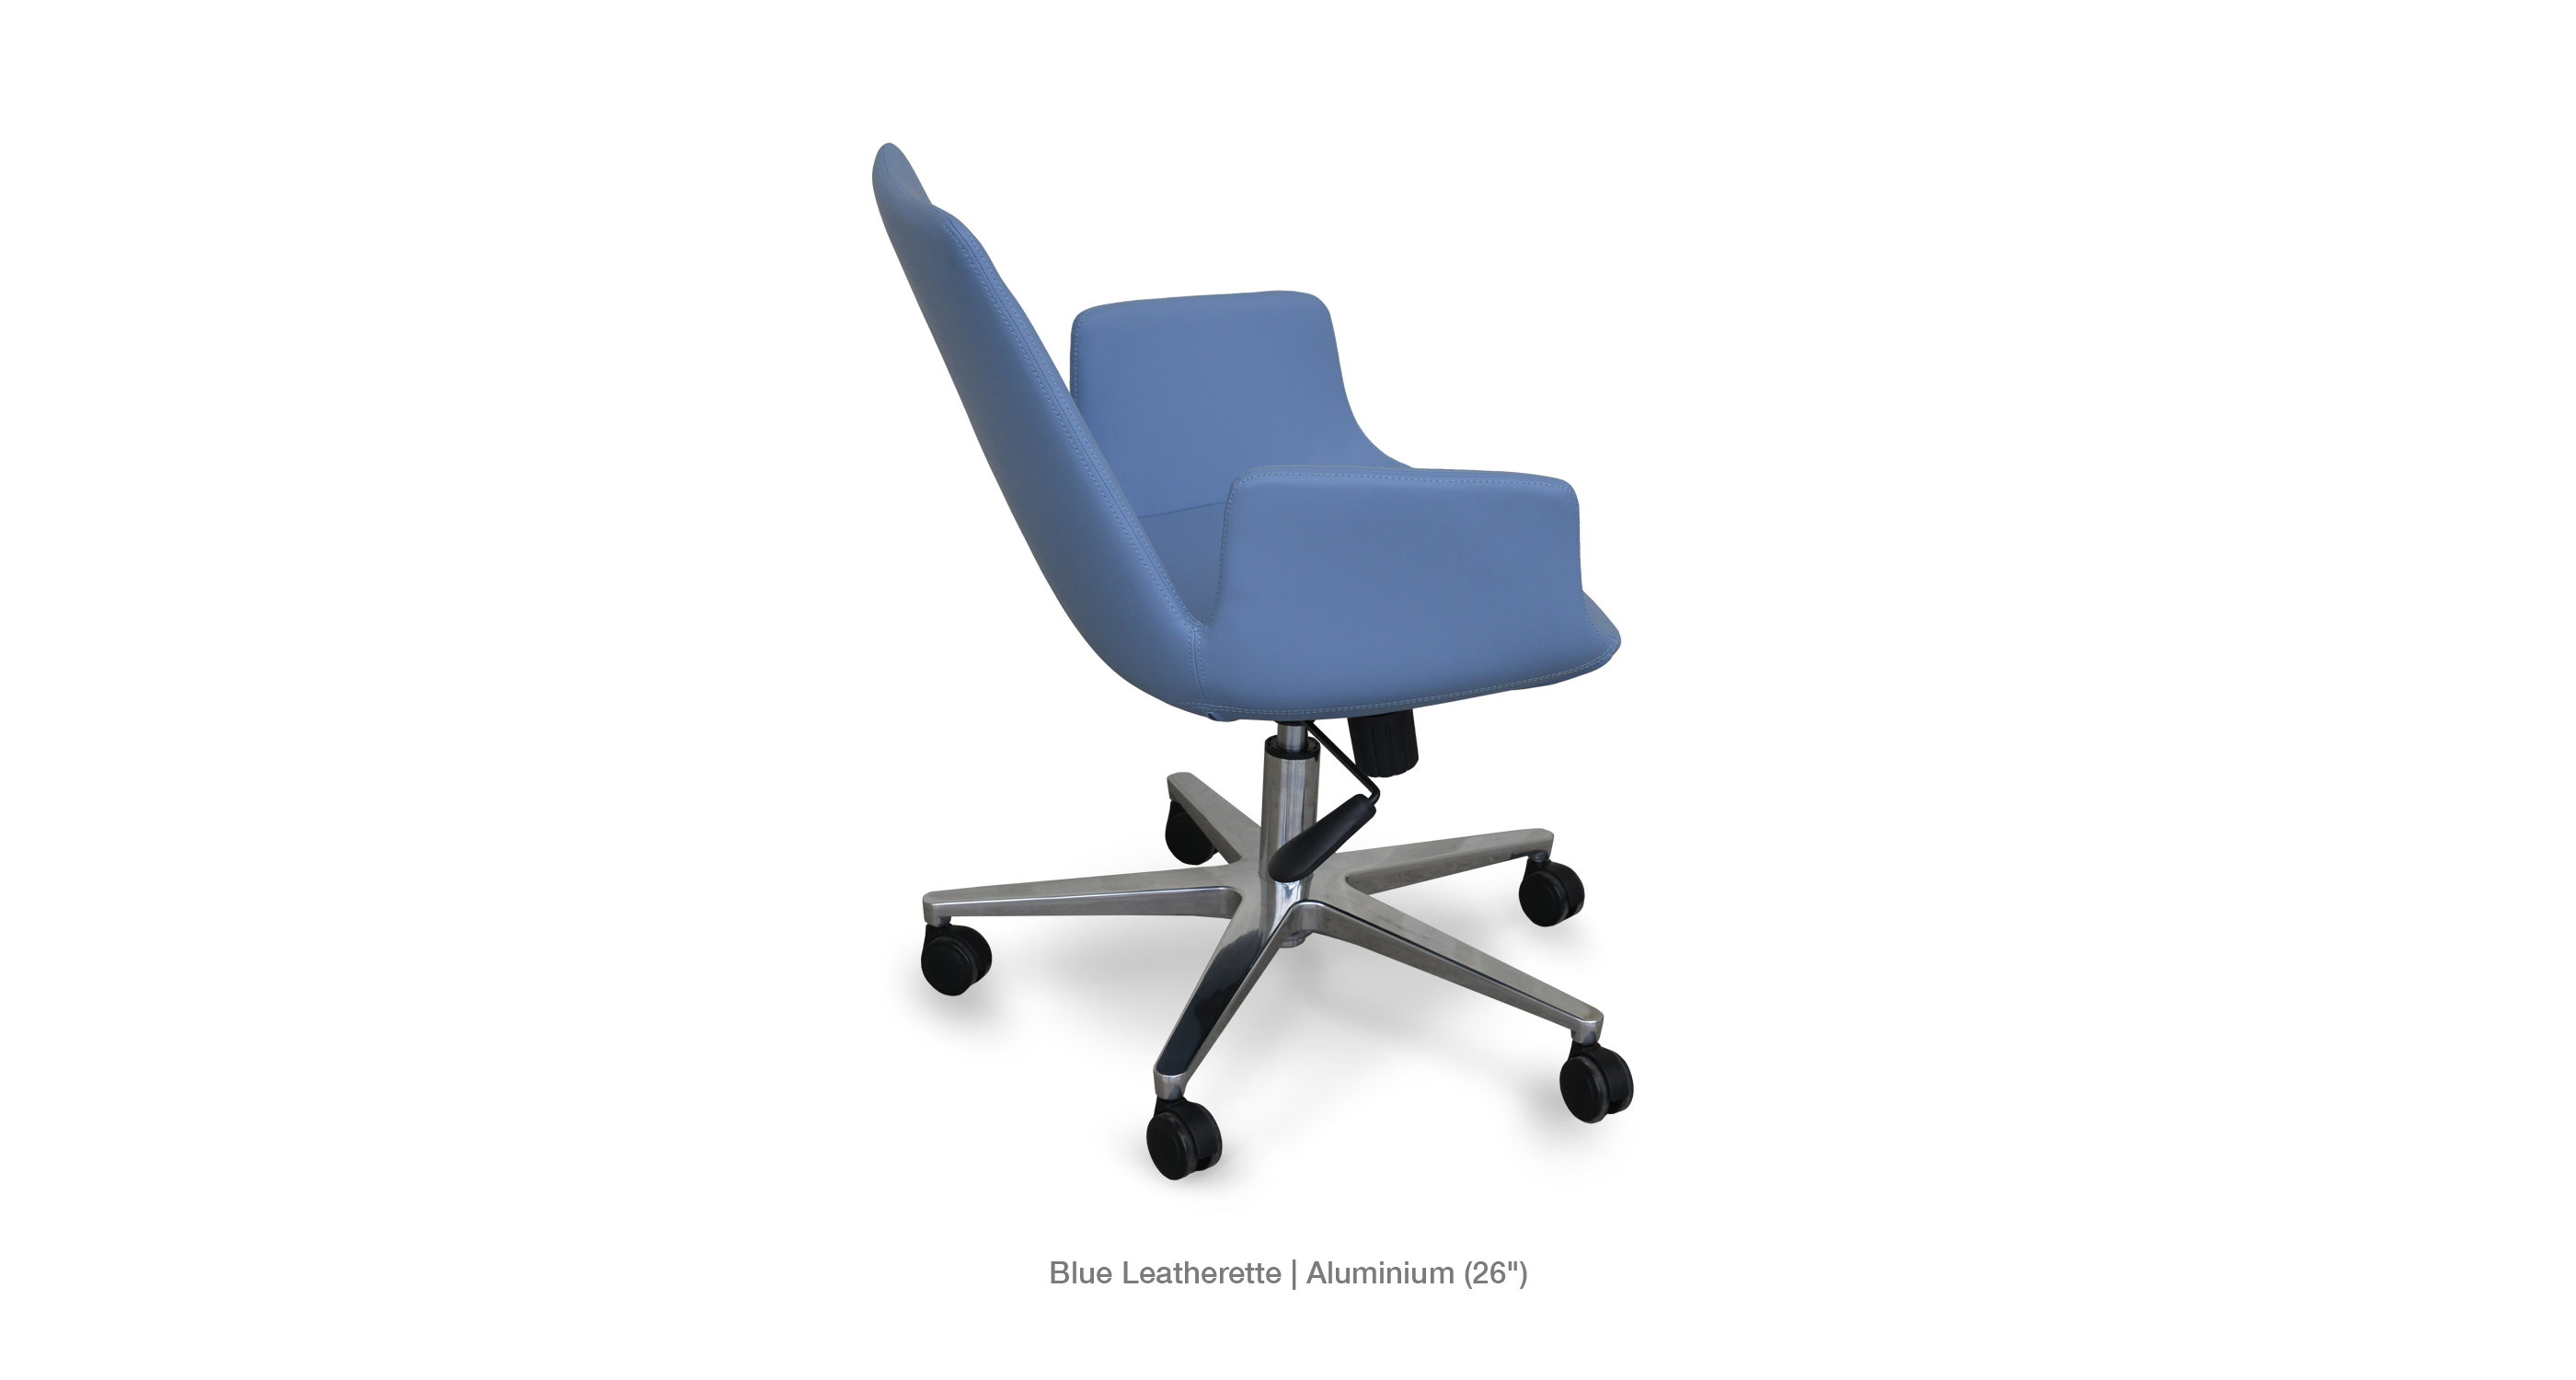 Eiffel Arm Office Blue Leatherette